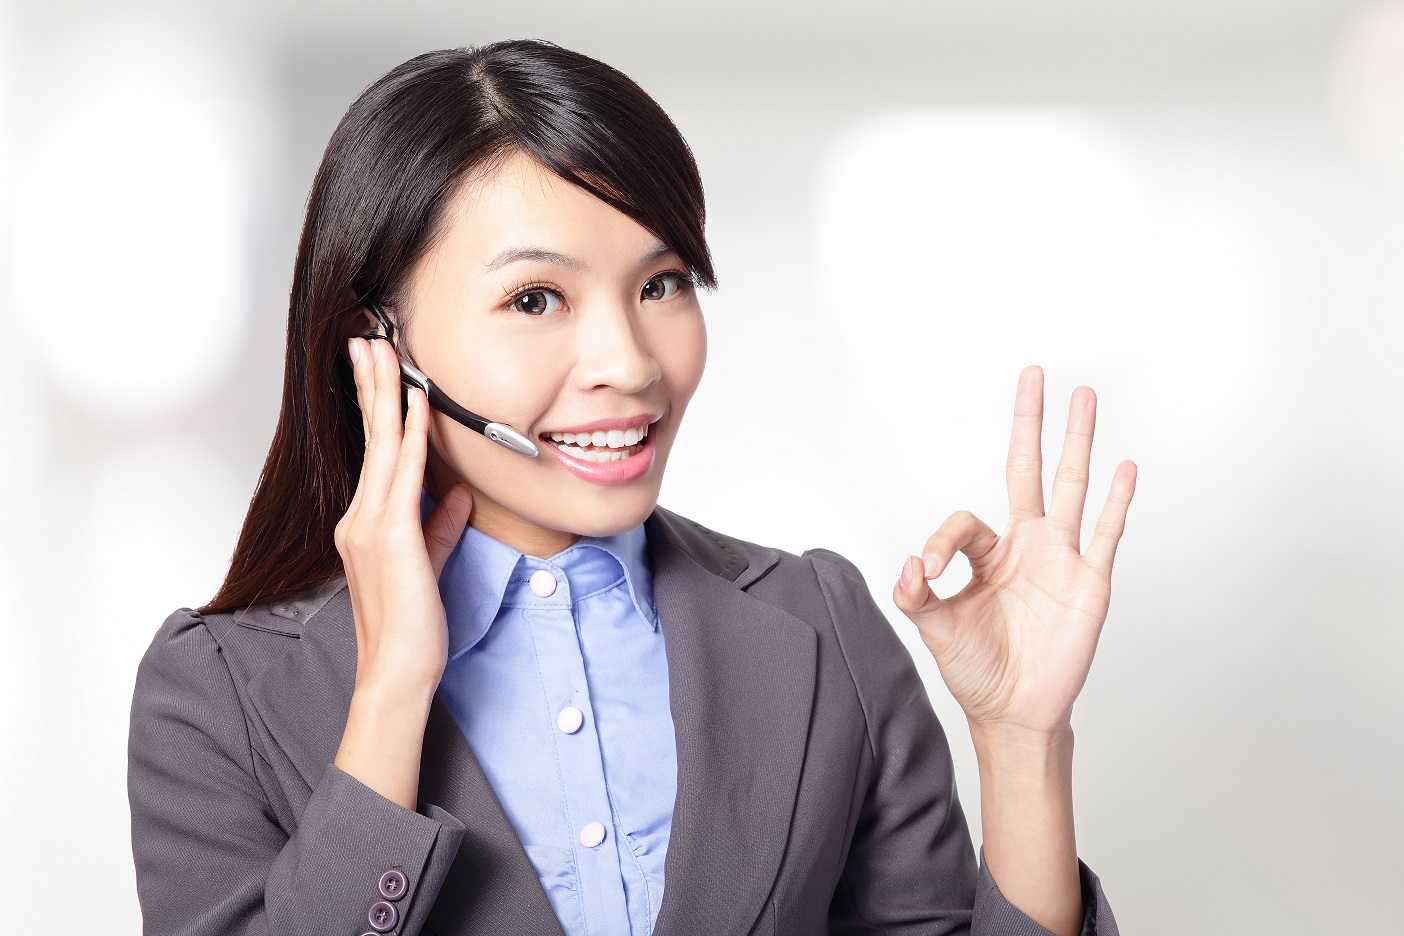 beautiful  customer  service  operator  woman with headset and smiling ,one hand touching the headset and the other hand show to ok sign, asian woman